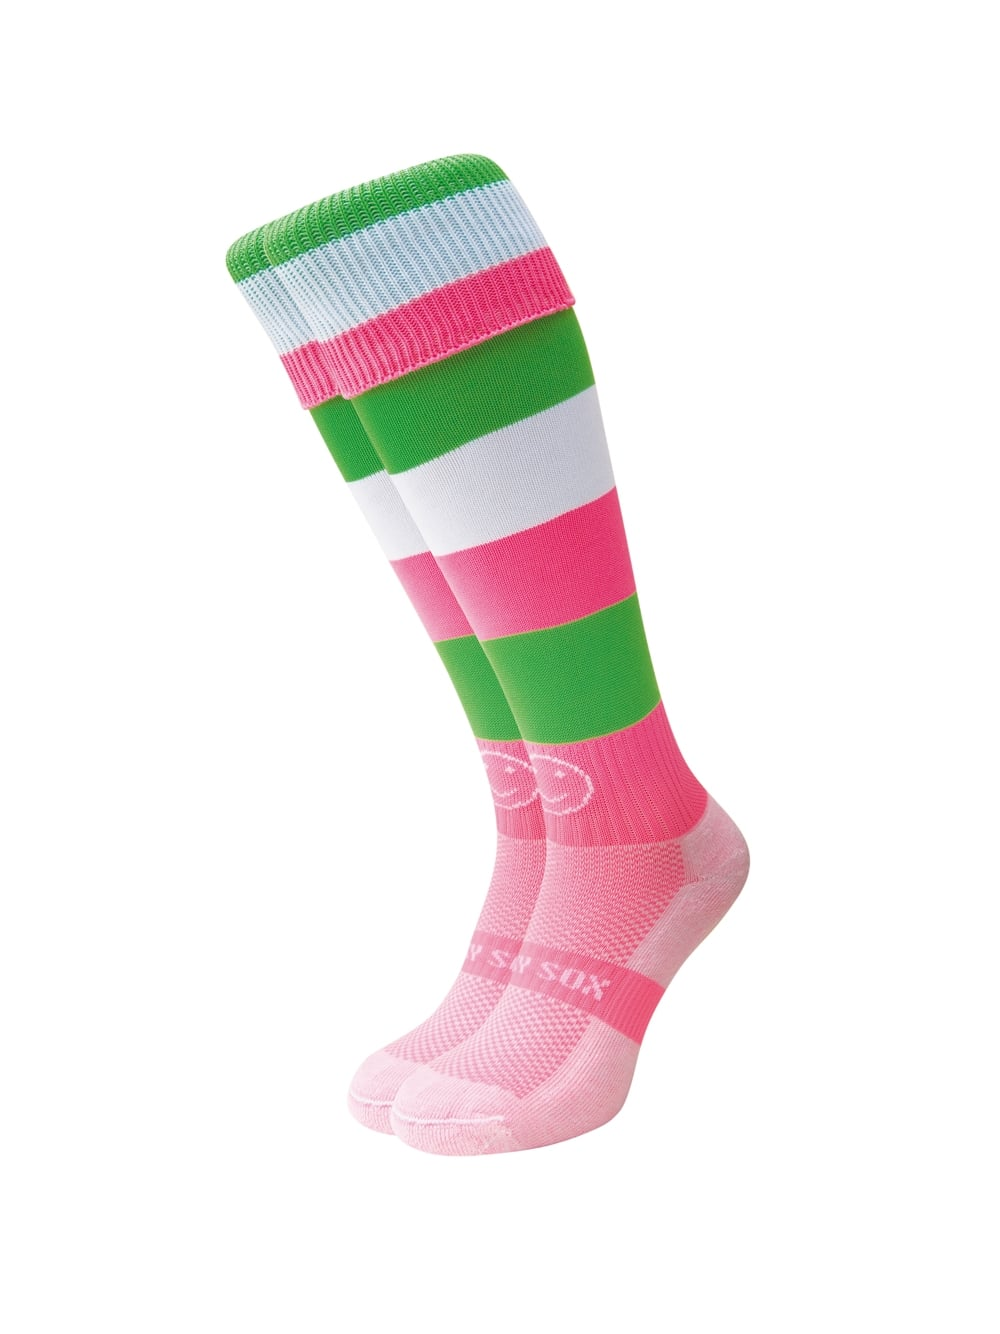 WACKY SOX WATERMELON